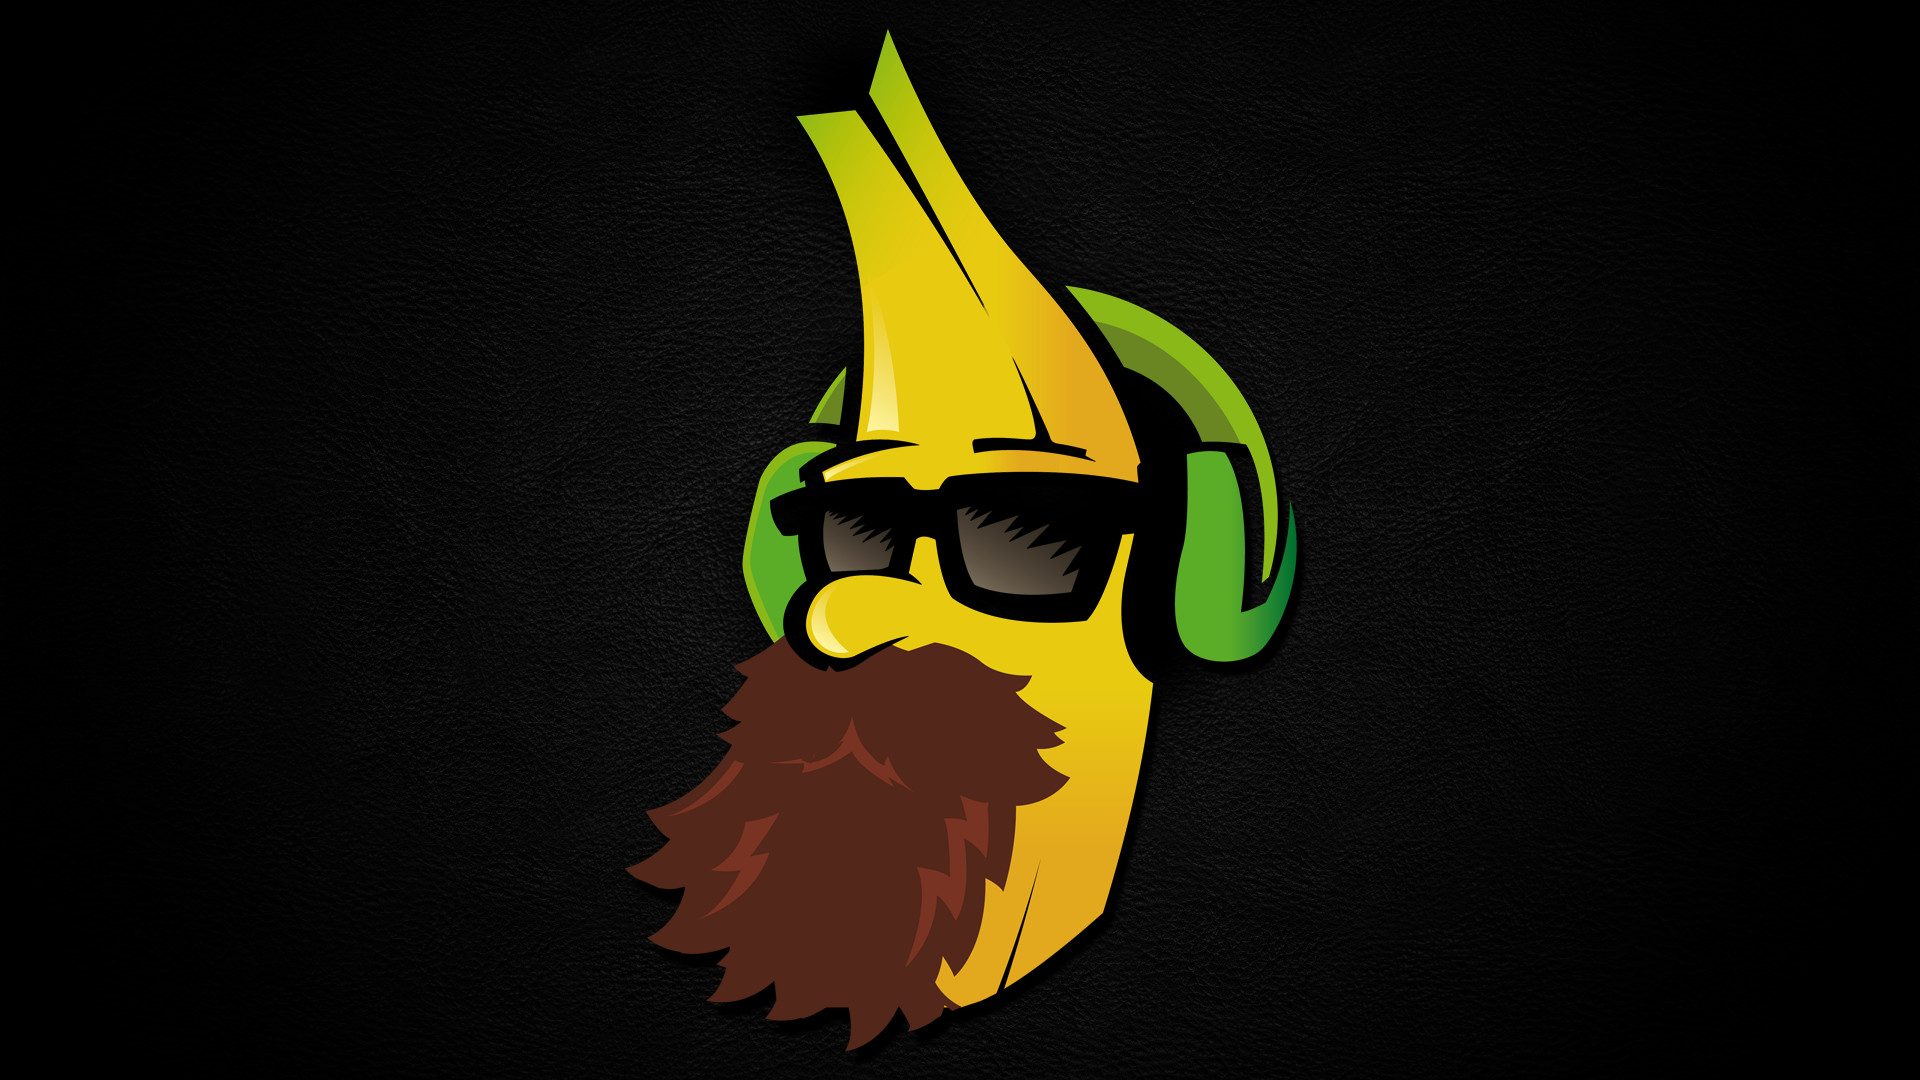 Res: 1920x1080, for the banana fans